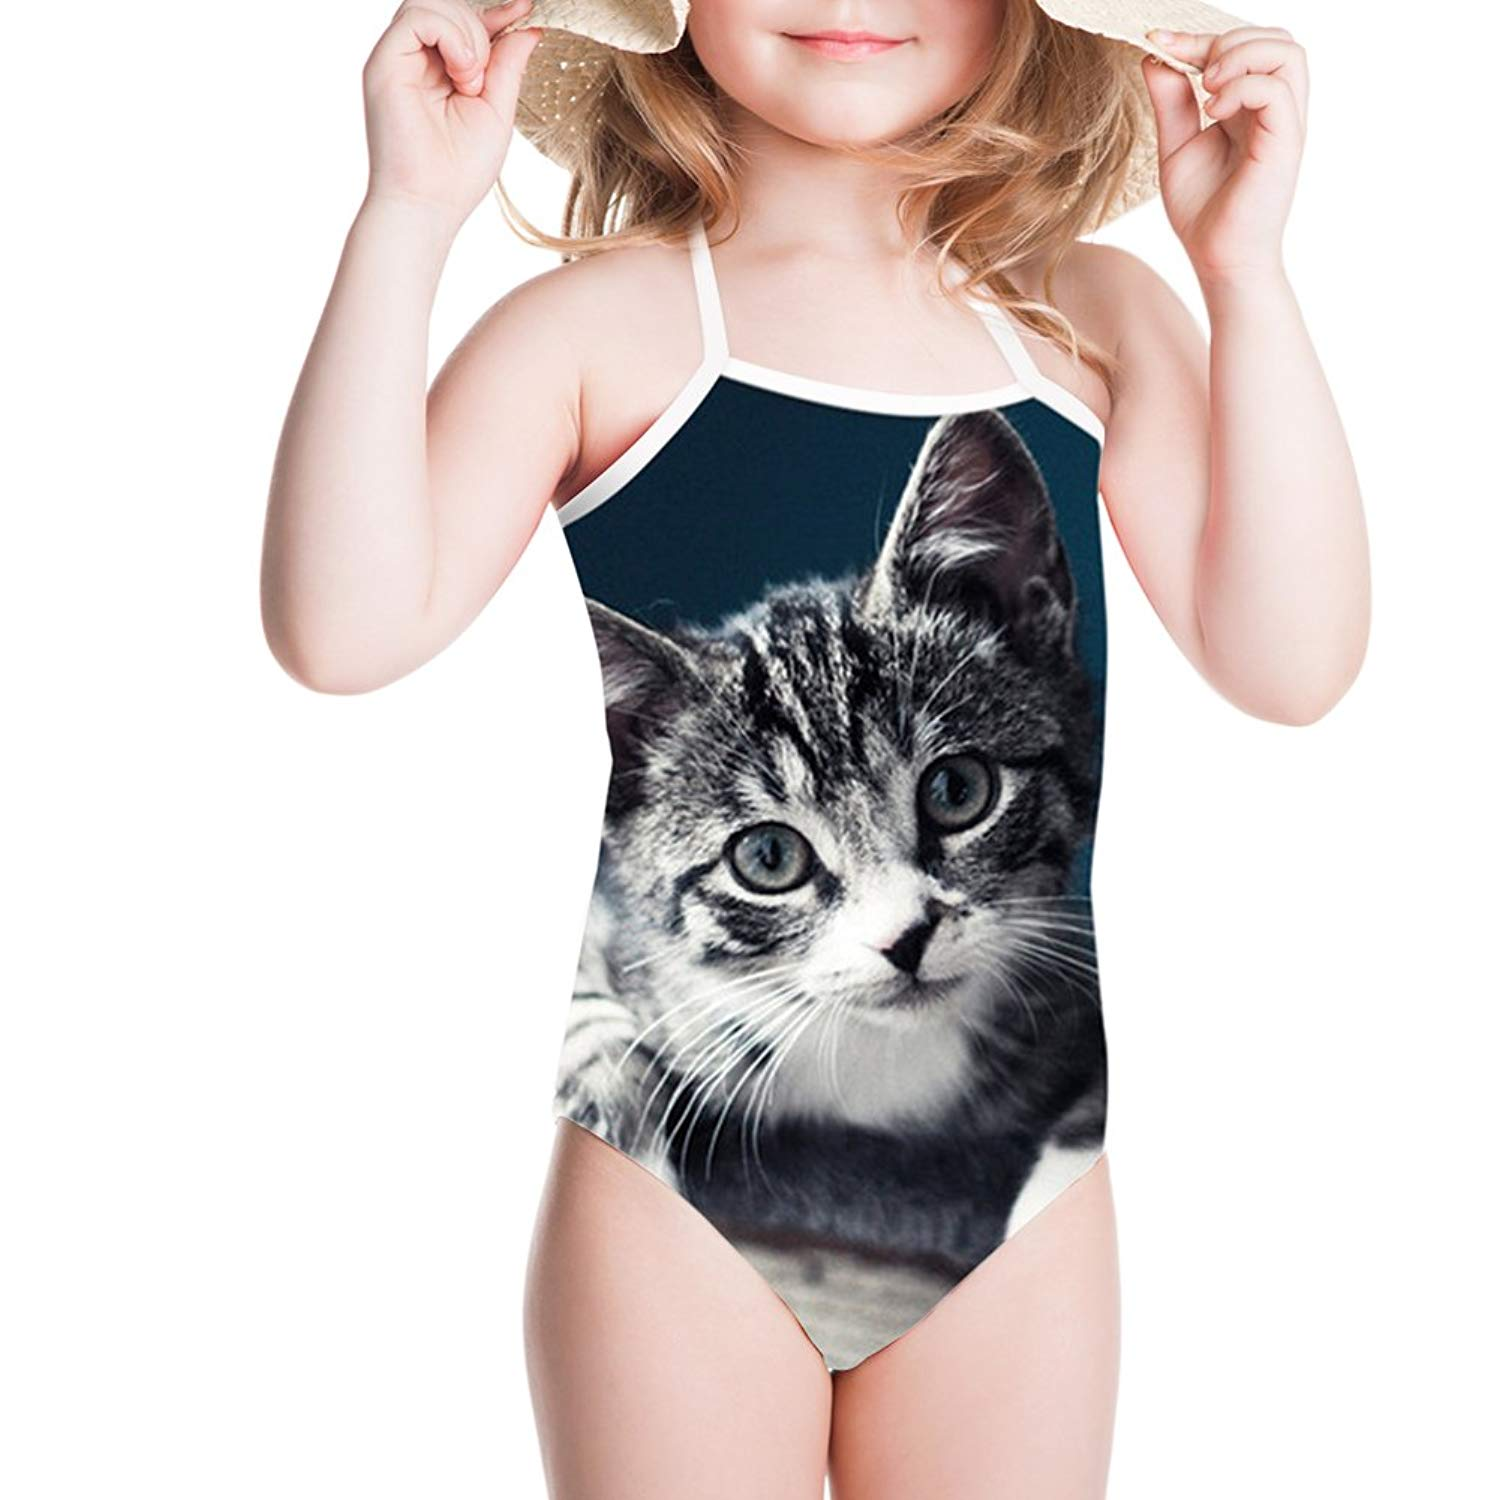 bd4a07869b5c6 Get Quotations · Sannovo Baby Surf Clothes Girl One Piece Swimsuit Cute Bathing  Suits Cover Ups